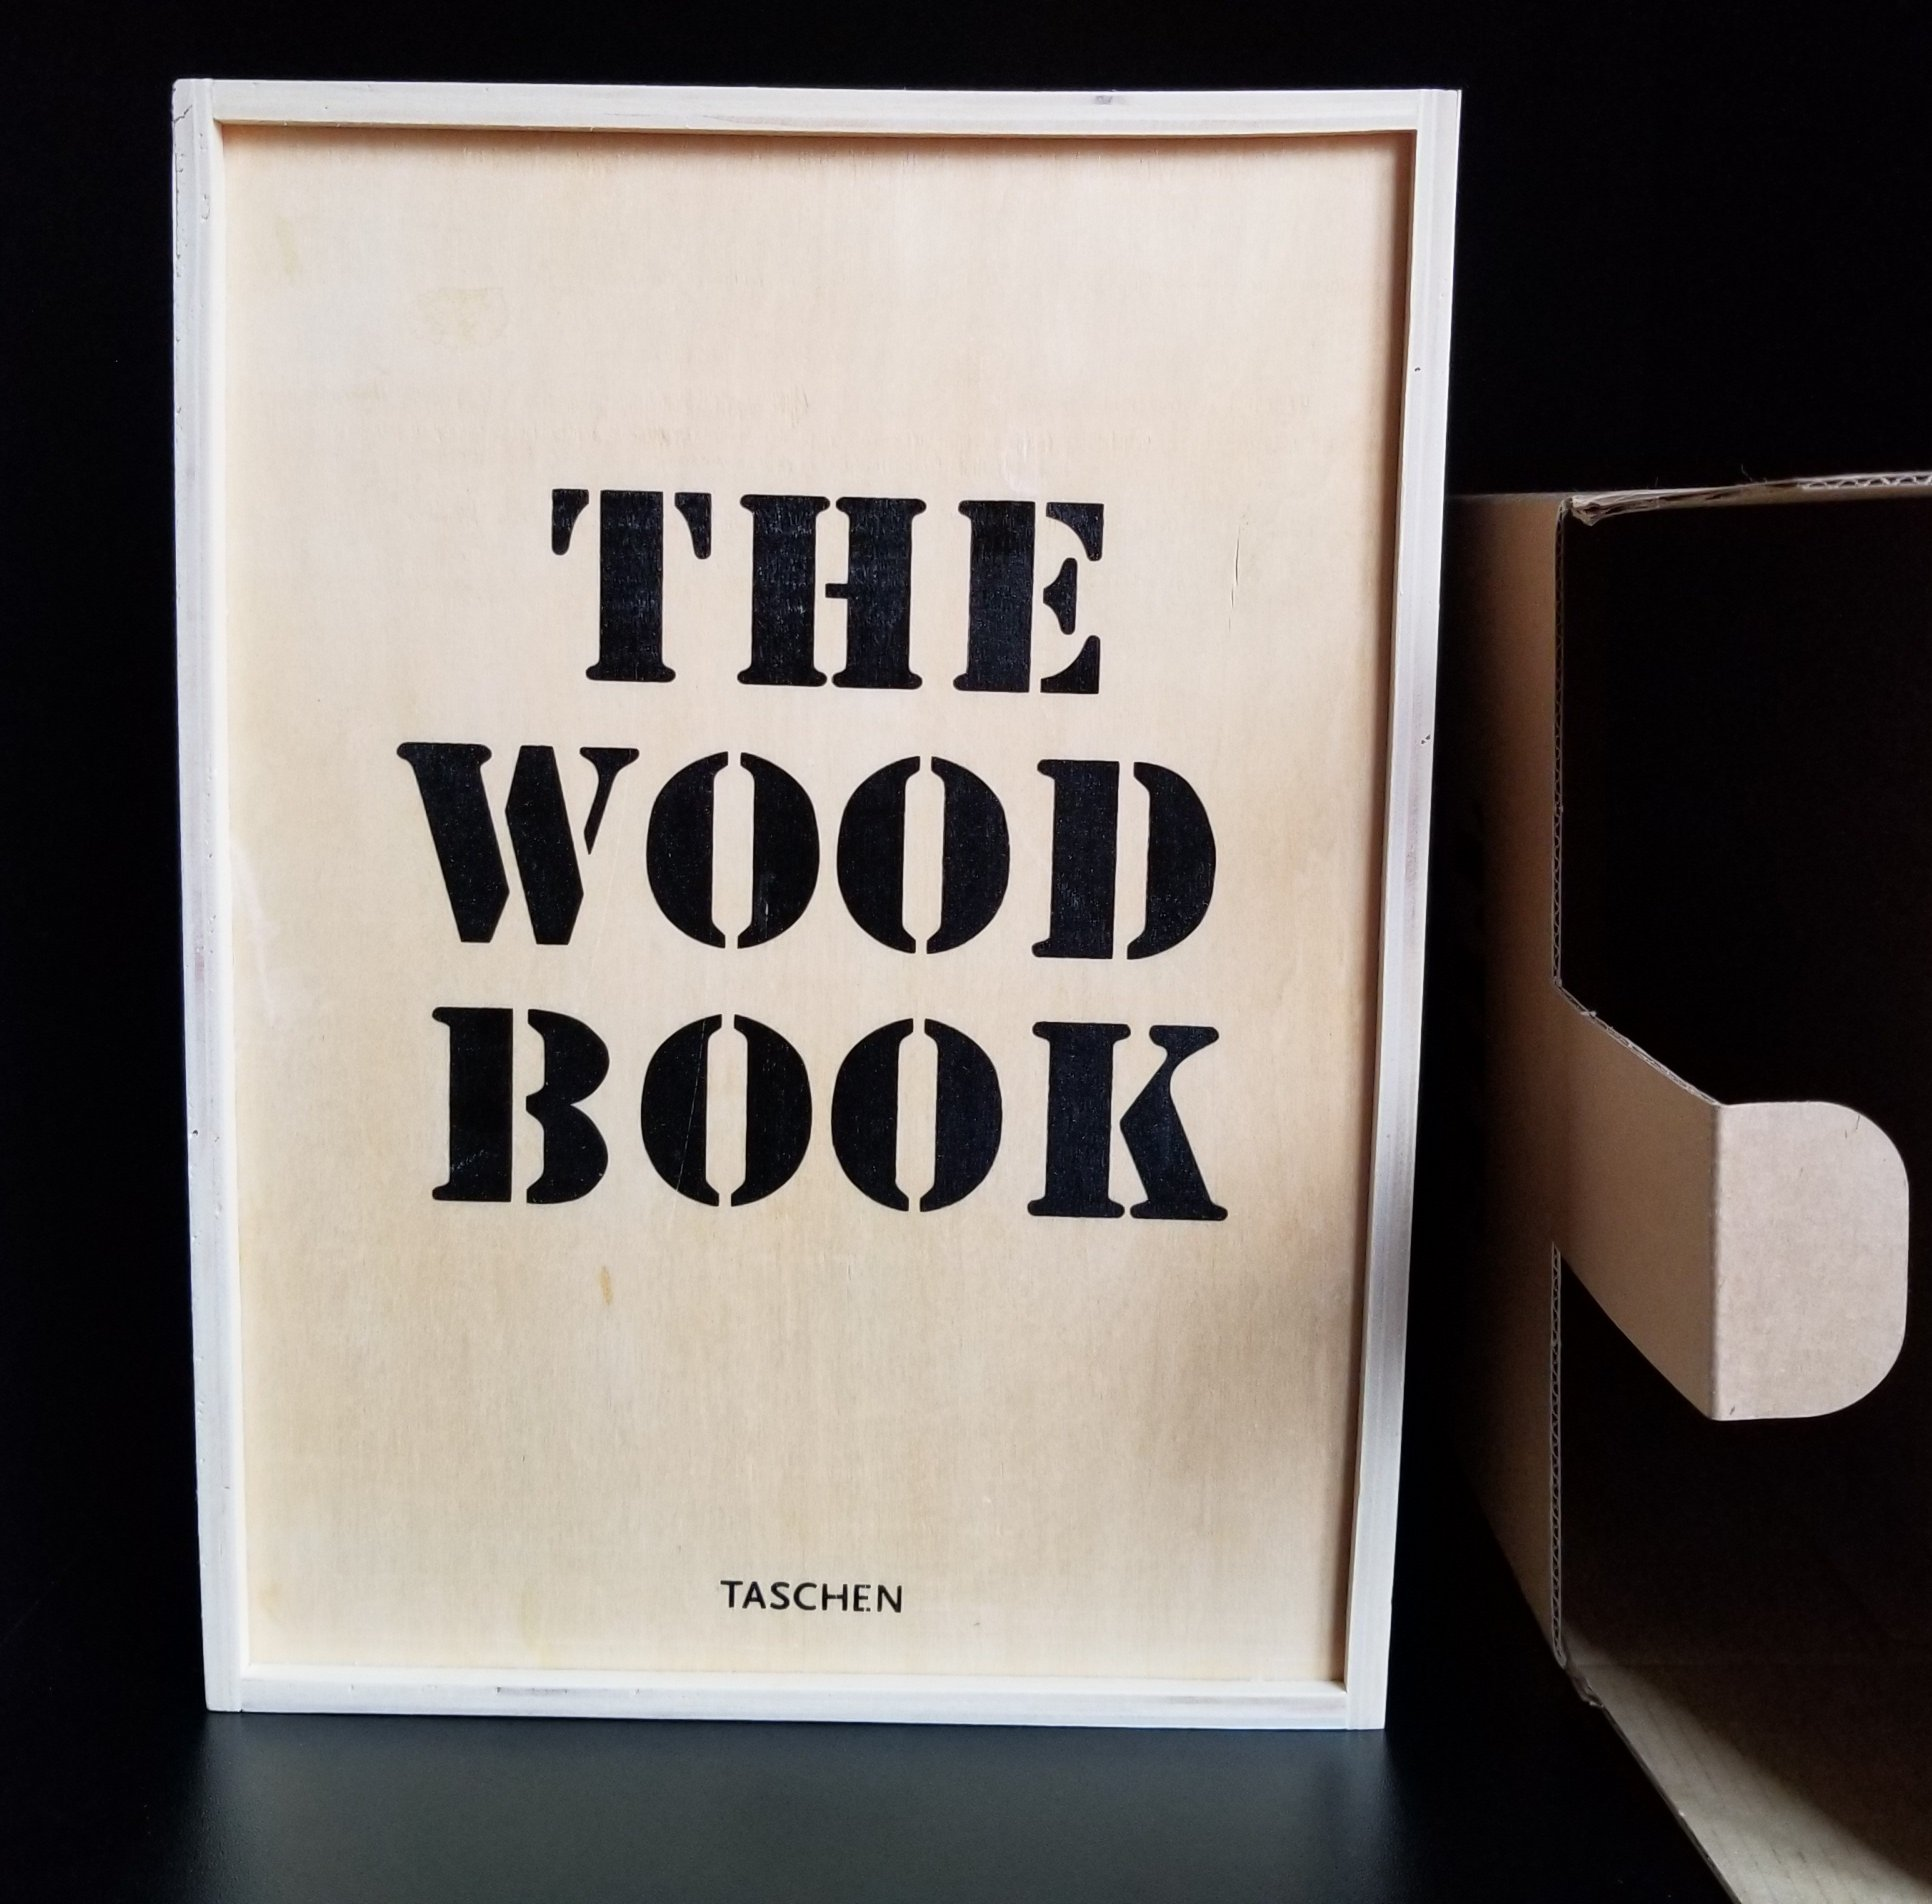 Image for The WoodBook [The Wood Book] in Wooden Box